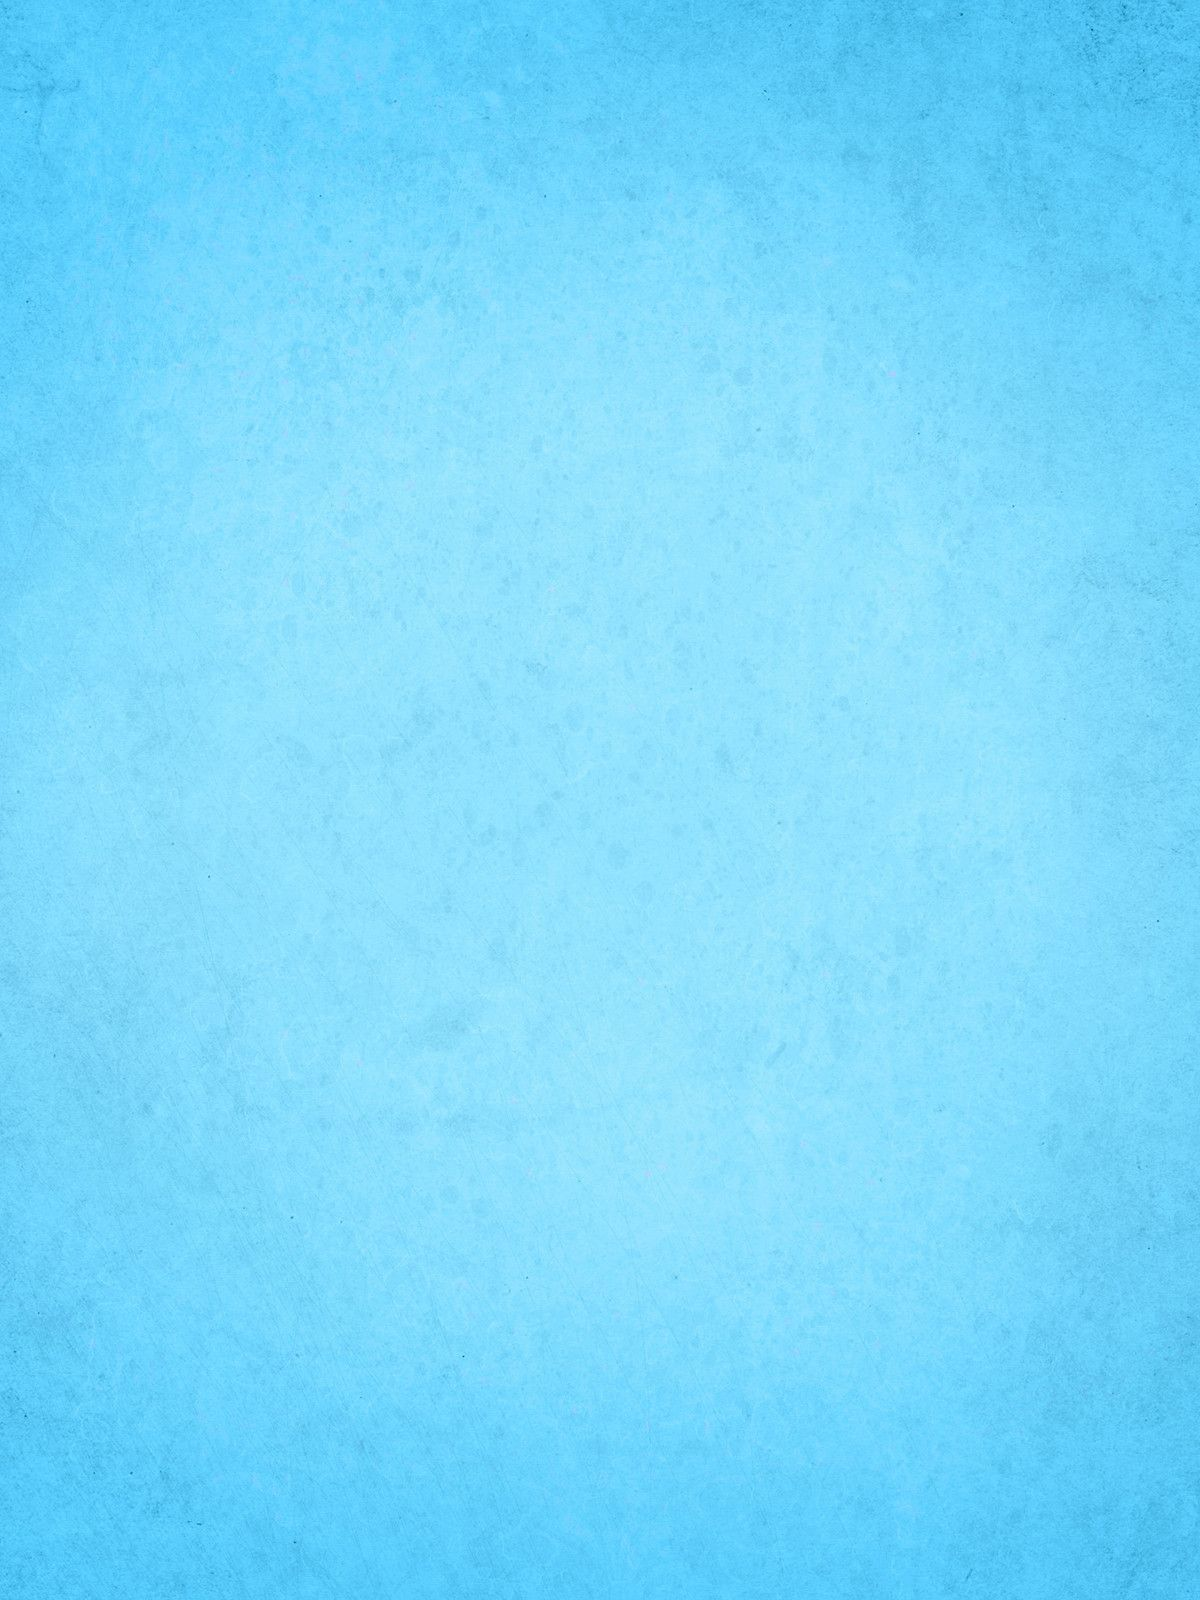 Sky Blue Solid Texture Photo Background / 9042 | Blue ...